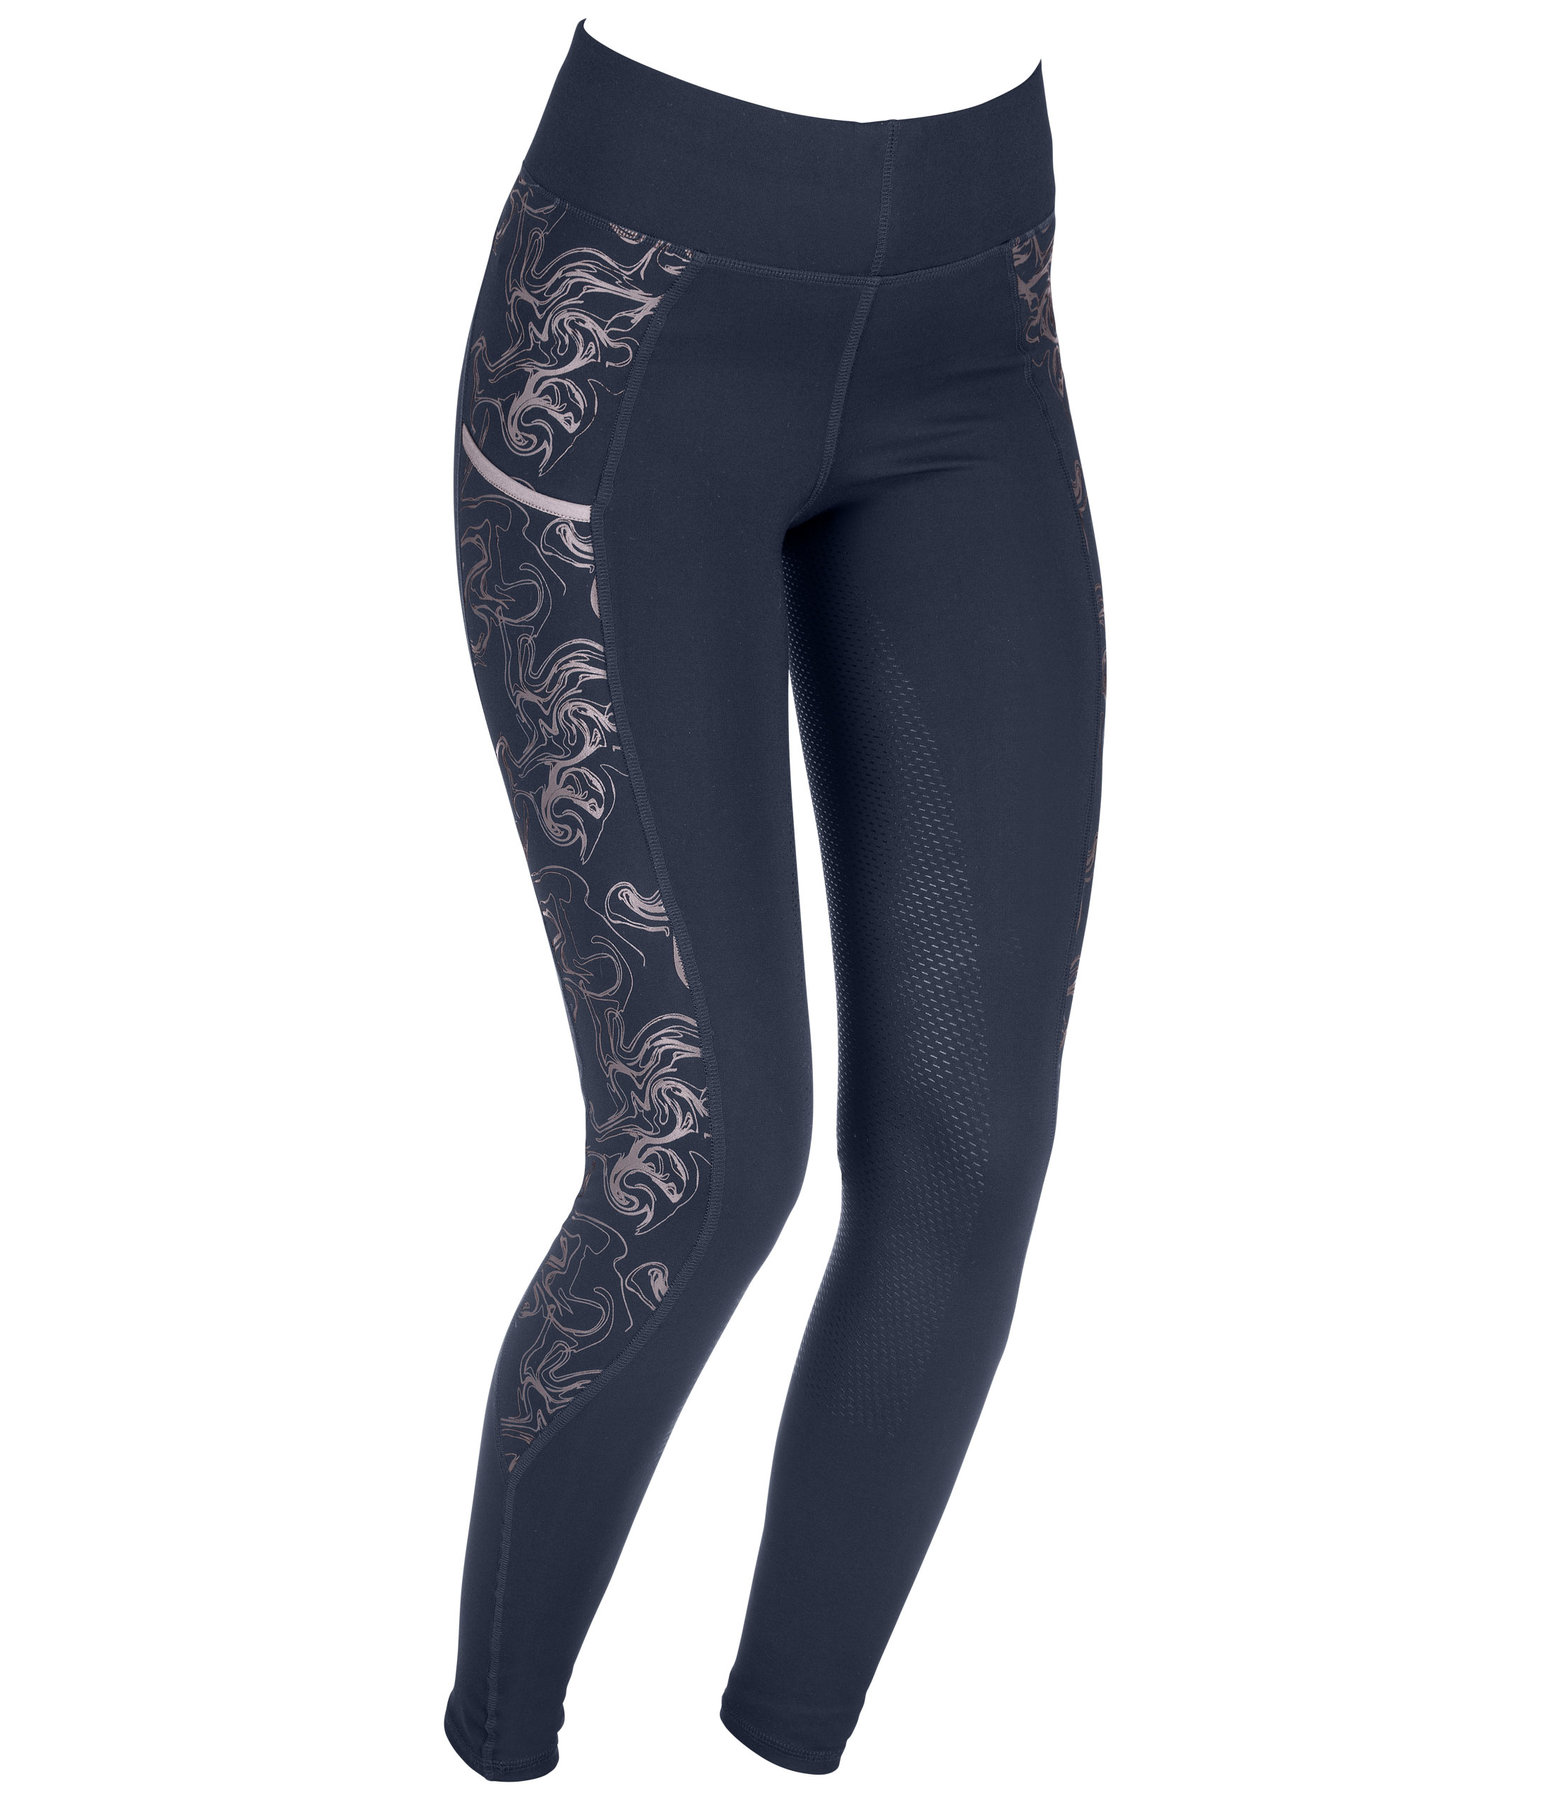 Grip Full-Seat Riding Leggings Alicia